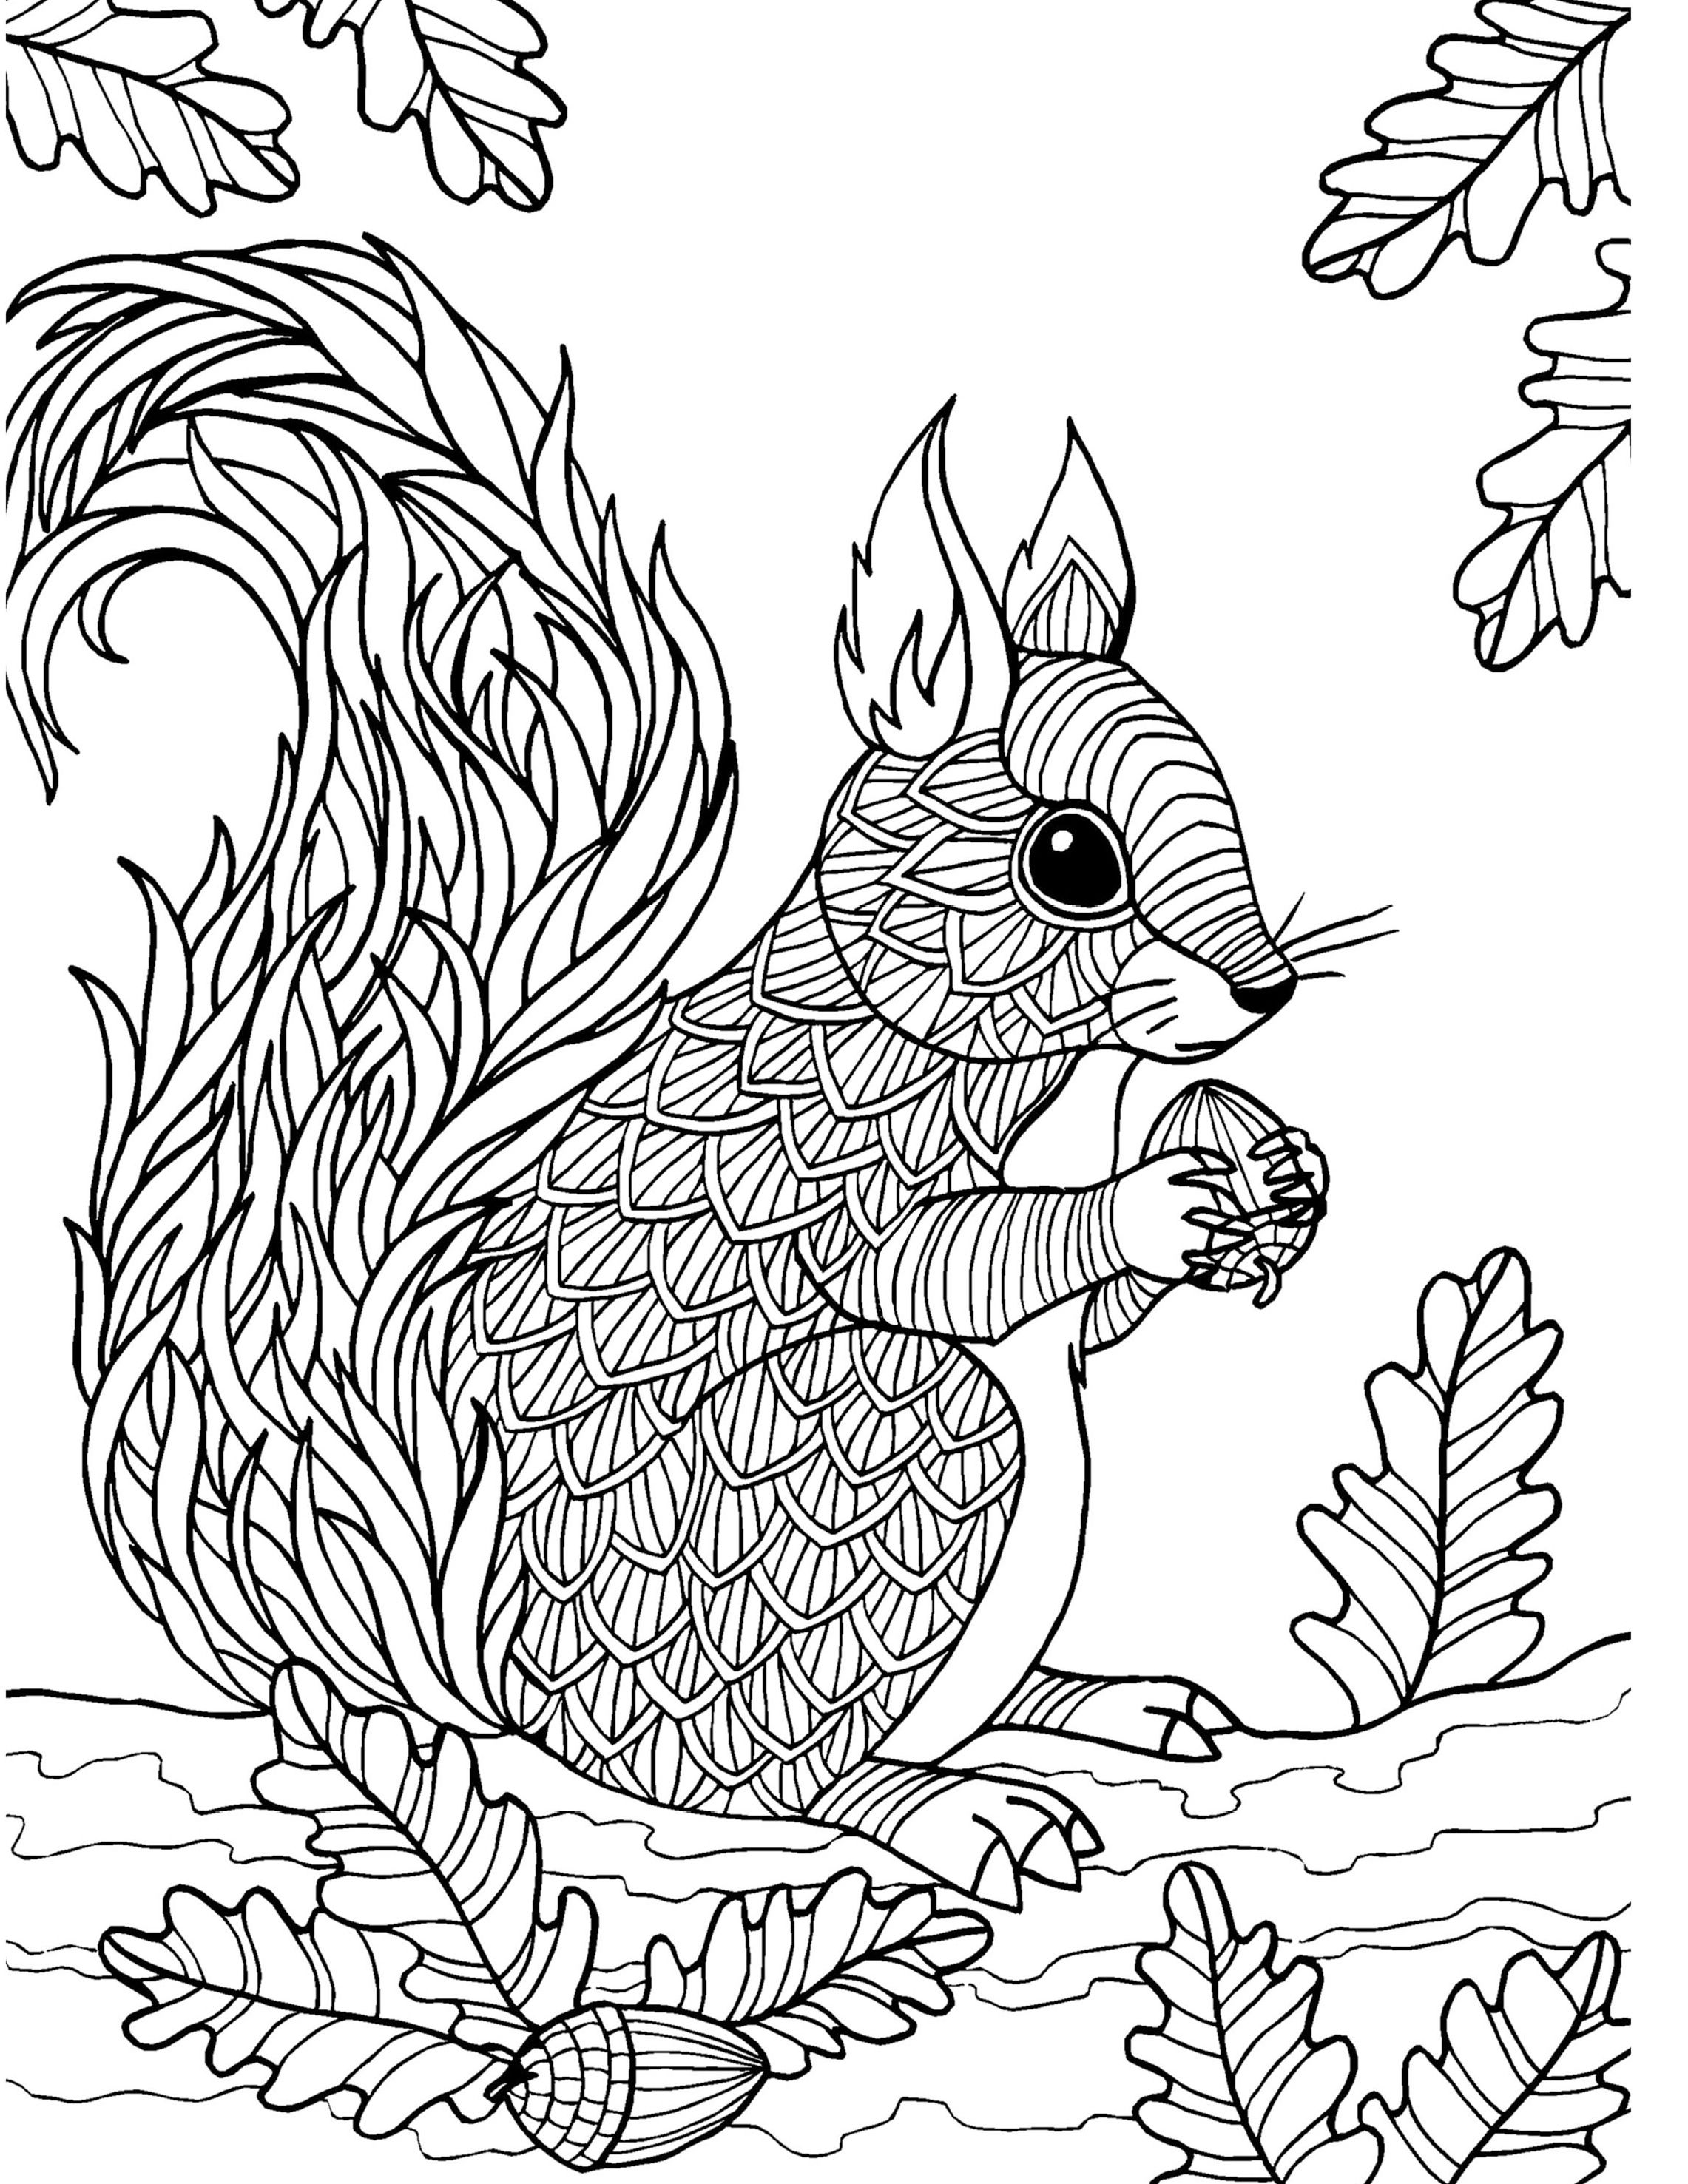 squirrel adult colouring page  colouring in sheets  art